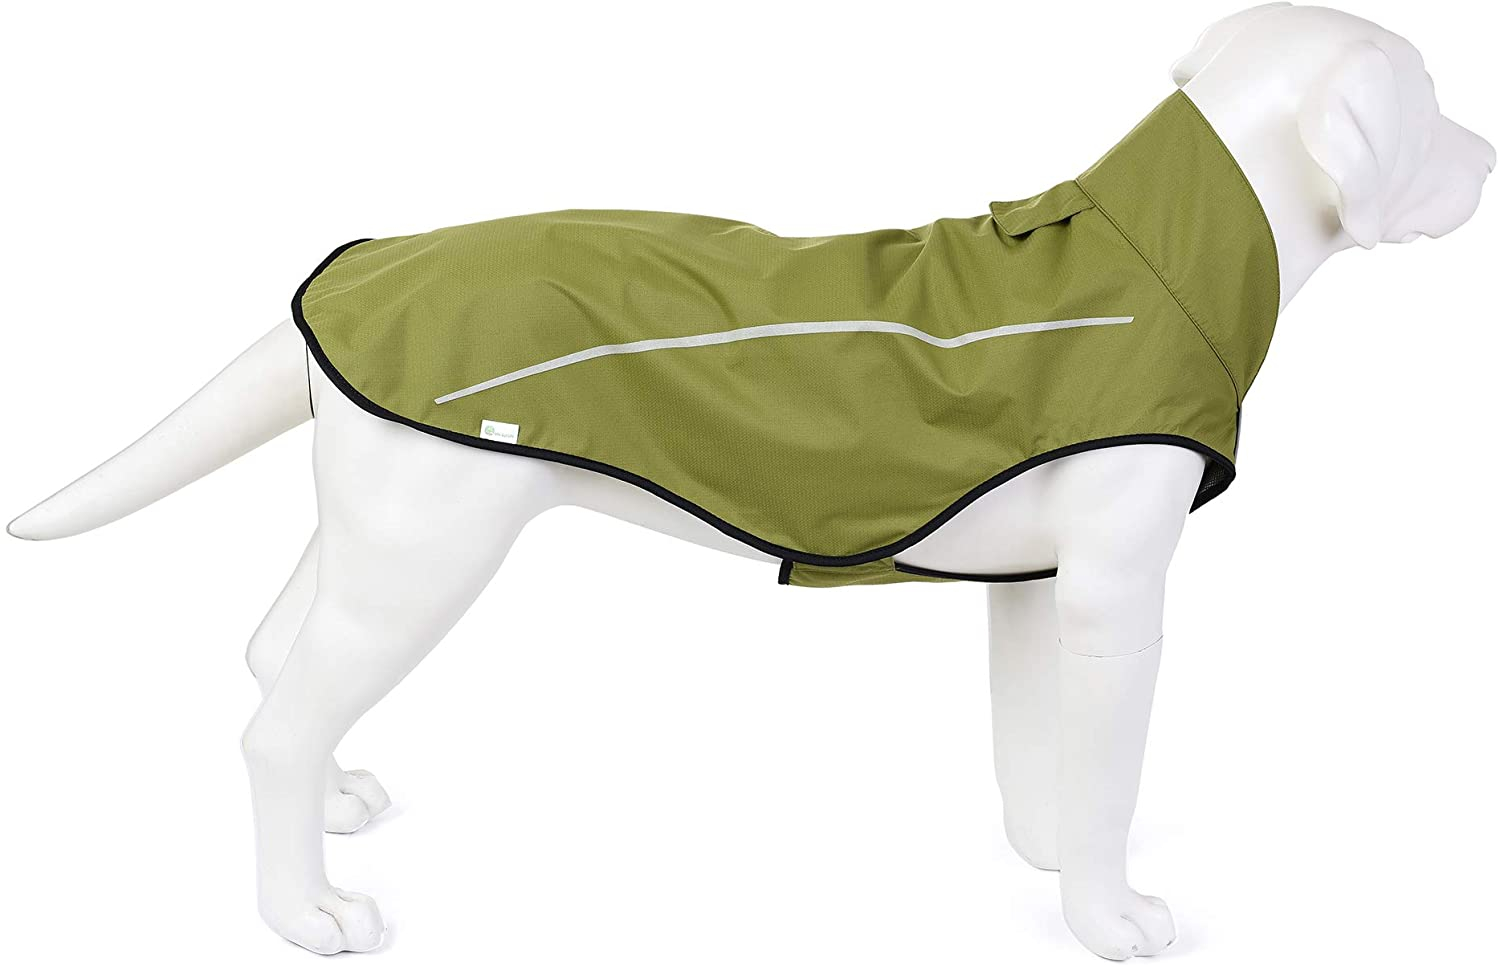 Mile High Life | Dog Raincoat | Adjustable Water Proof Pet Clothes | Lightweight Rain Jacket with Reflective Strip | Easy Step in Velcro Closure